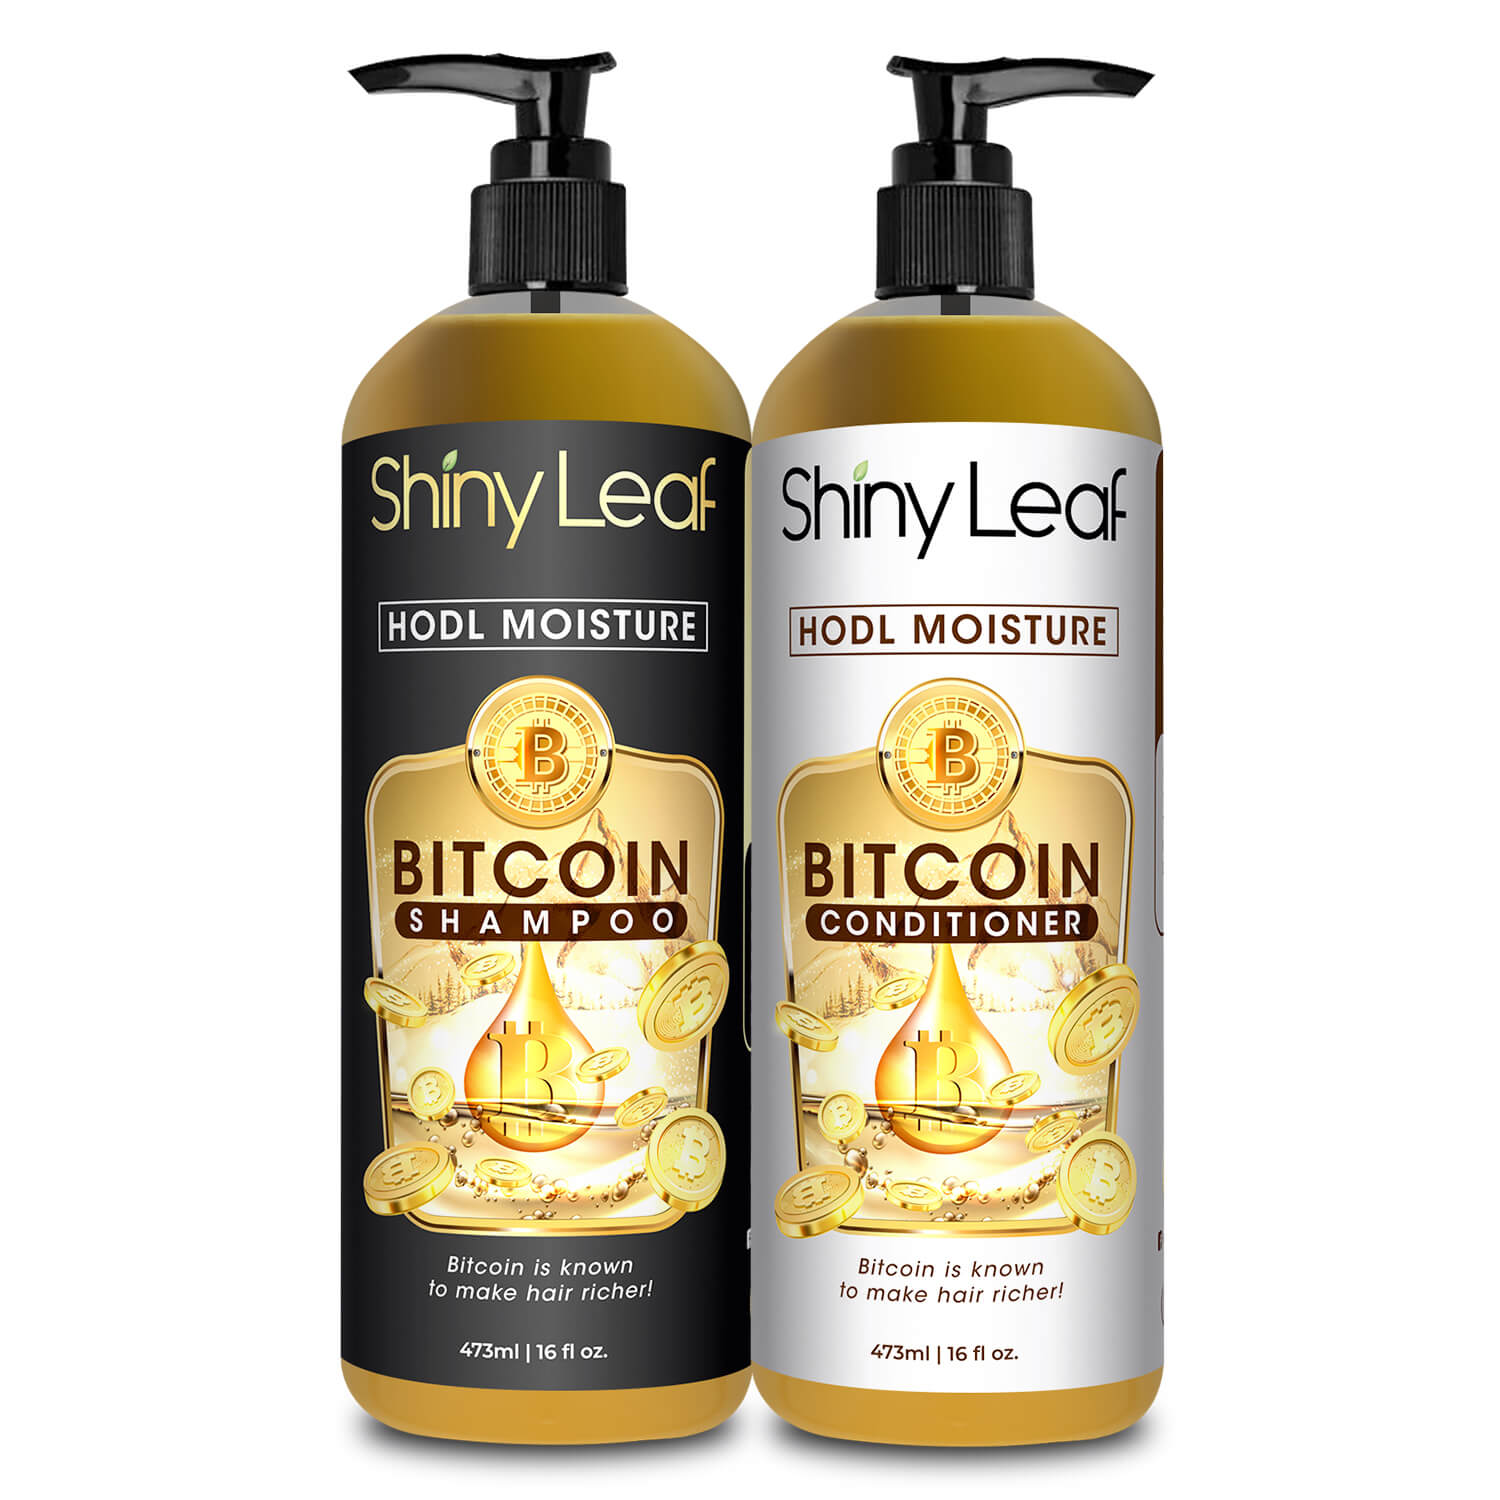 HODL MOISTURE BITCOIN SHAMPOO AND CONDITIONER SET